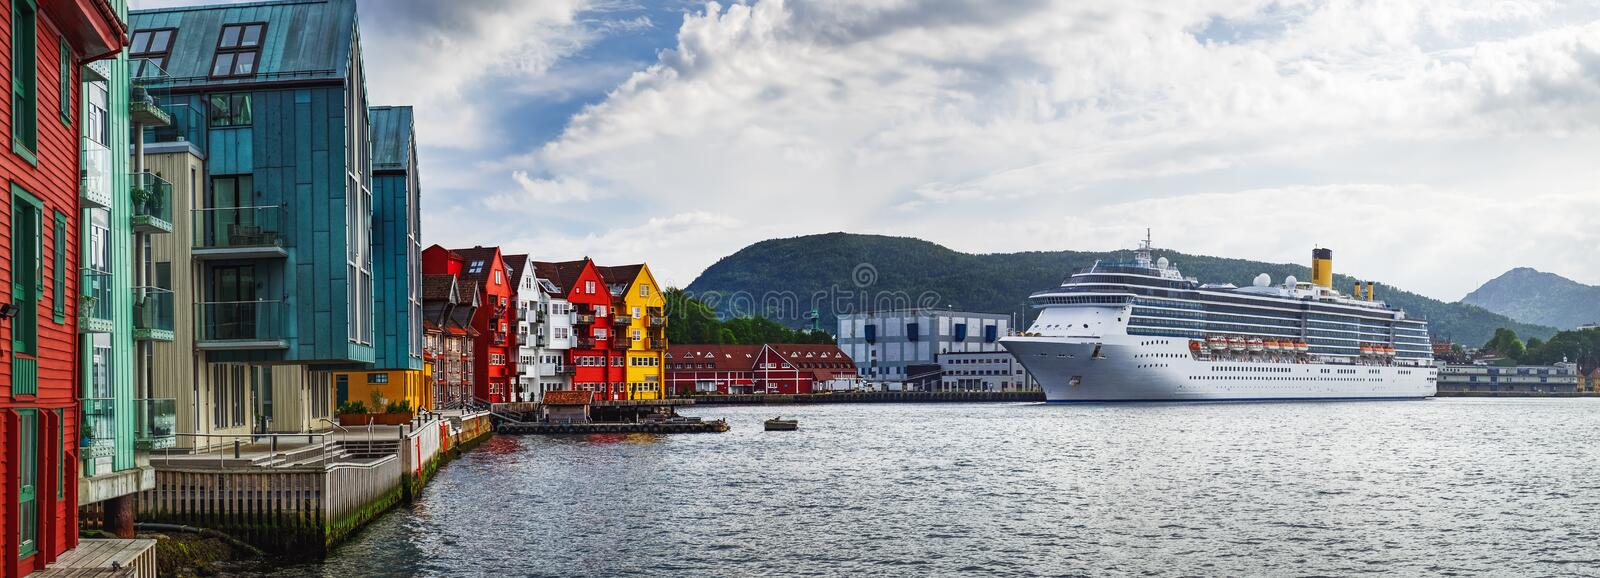 Old Town pier architecture in Bergen, Norway. Historical buildings in Bryggen - Hanseatic wharf in Bergen, Norway. Scenic summer panorama with the Old Town pier stock photography